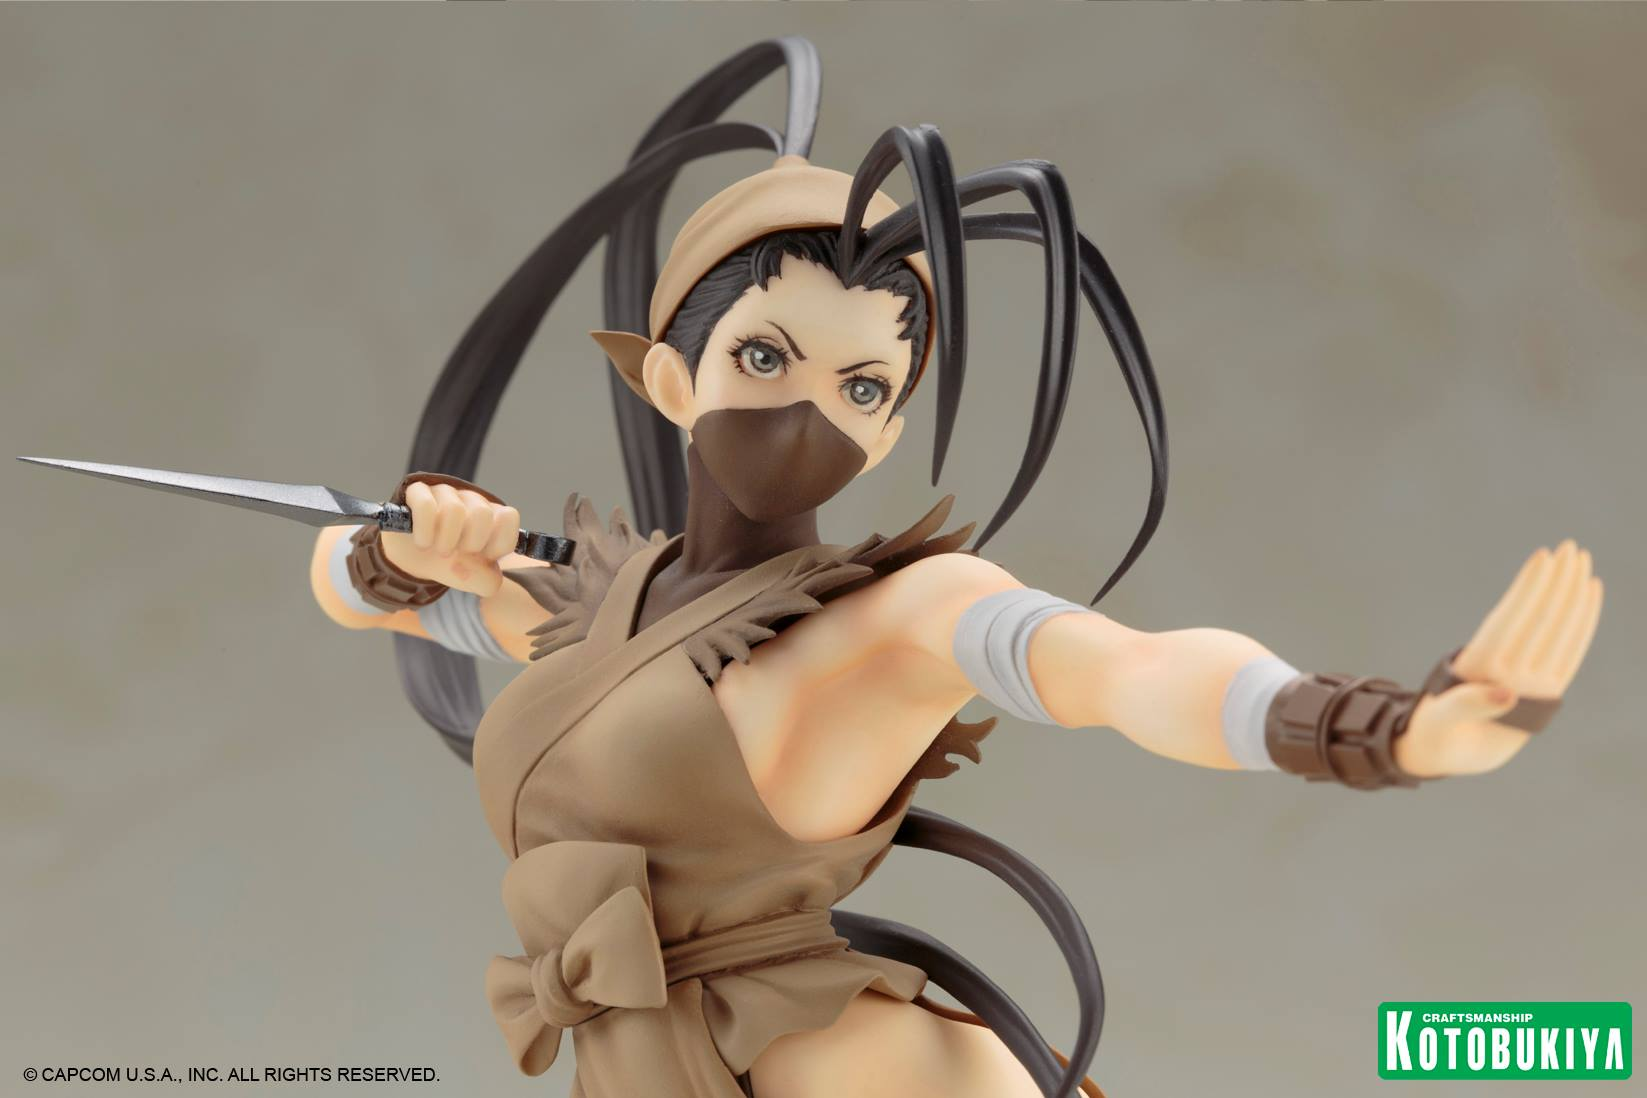 ibuki-street-fighter-bishoujo-statue-exclusive-kotobukiya-4